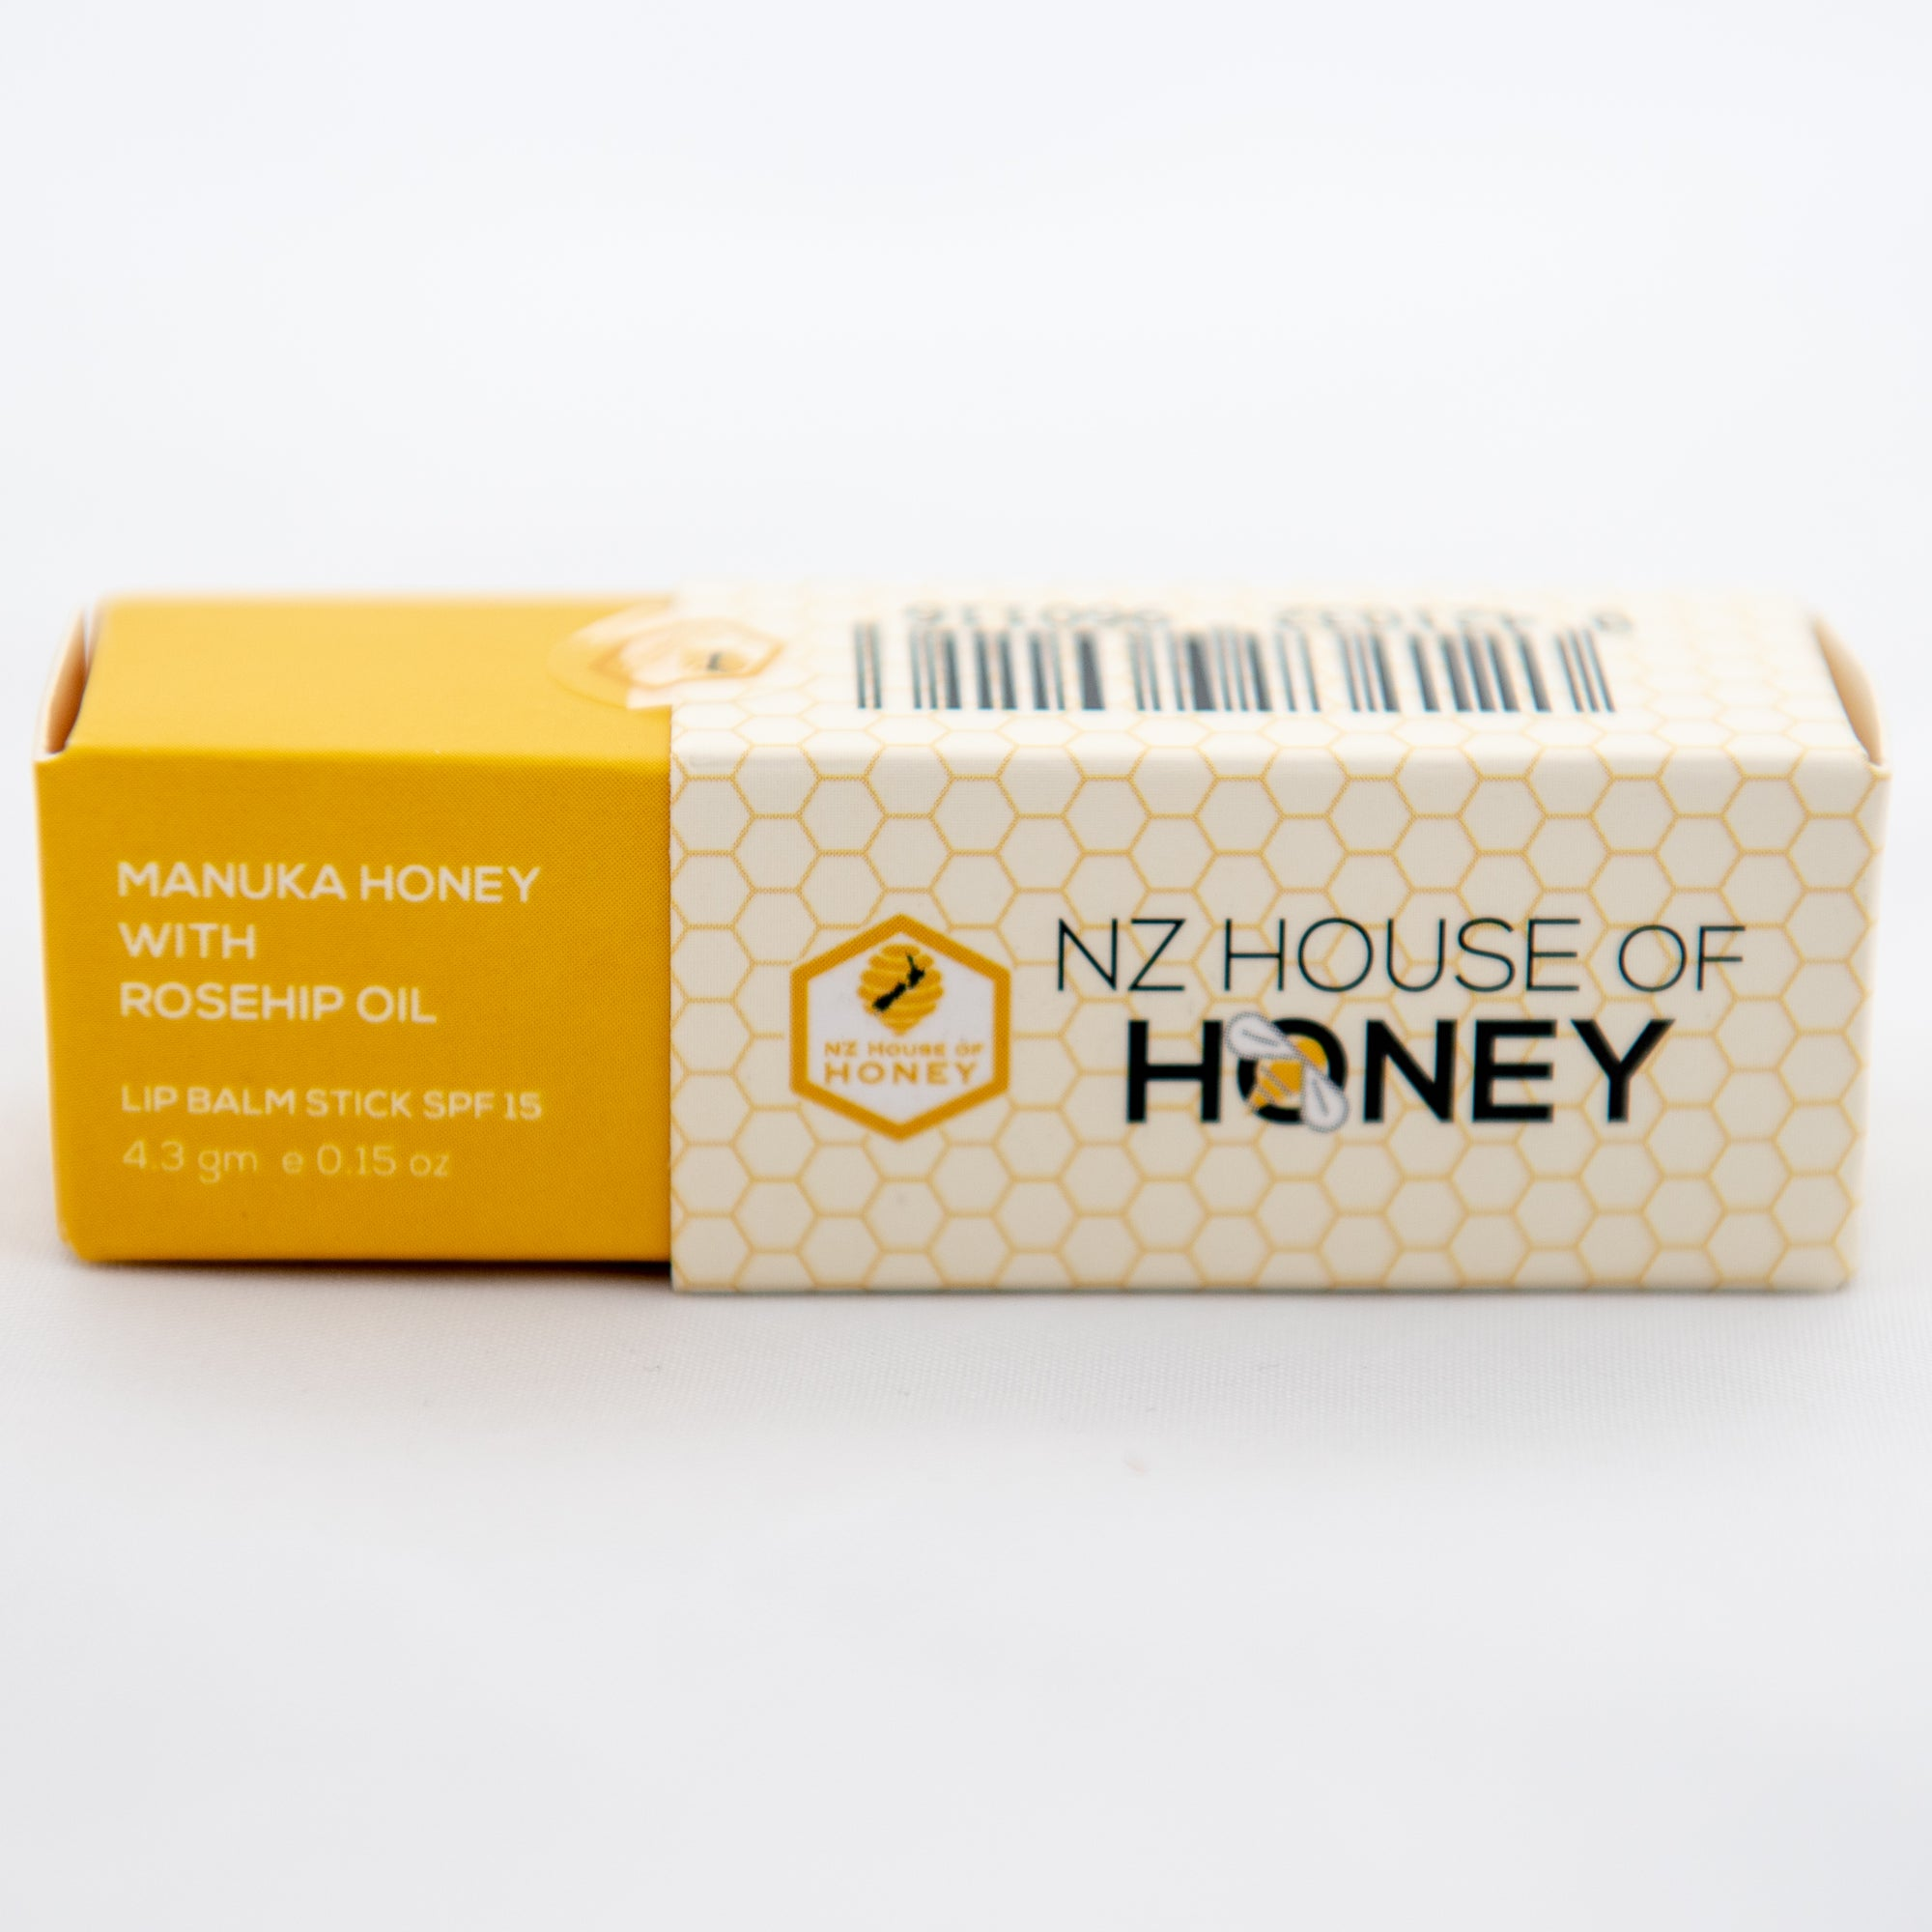 Lip Balm Stick with SPF15 - Face & Body | NZ House of Honey